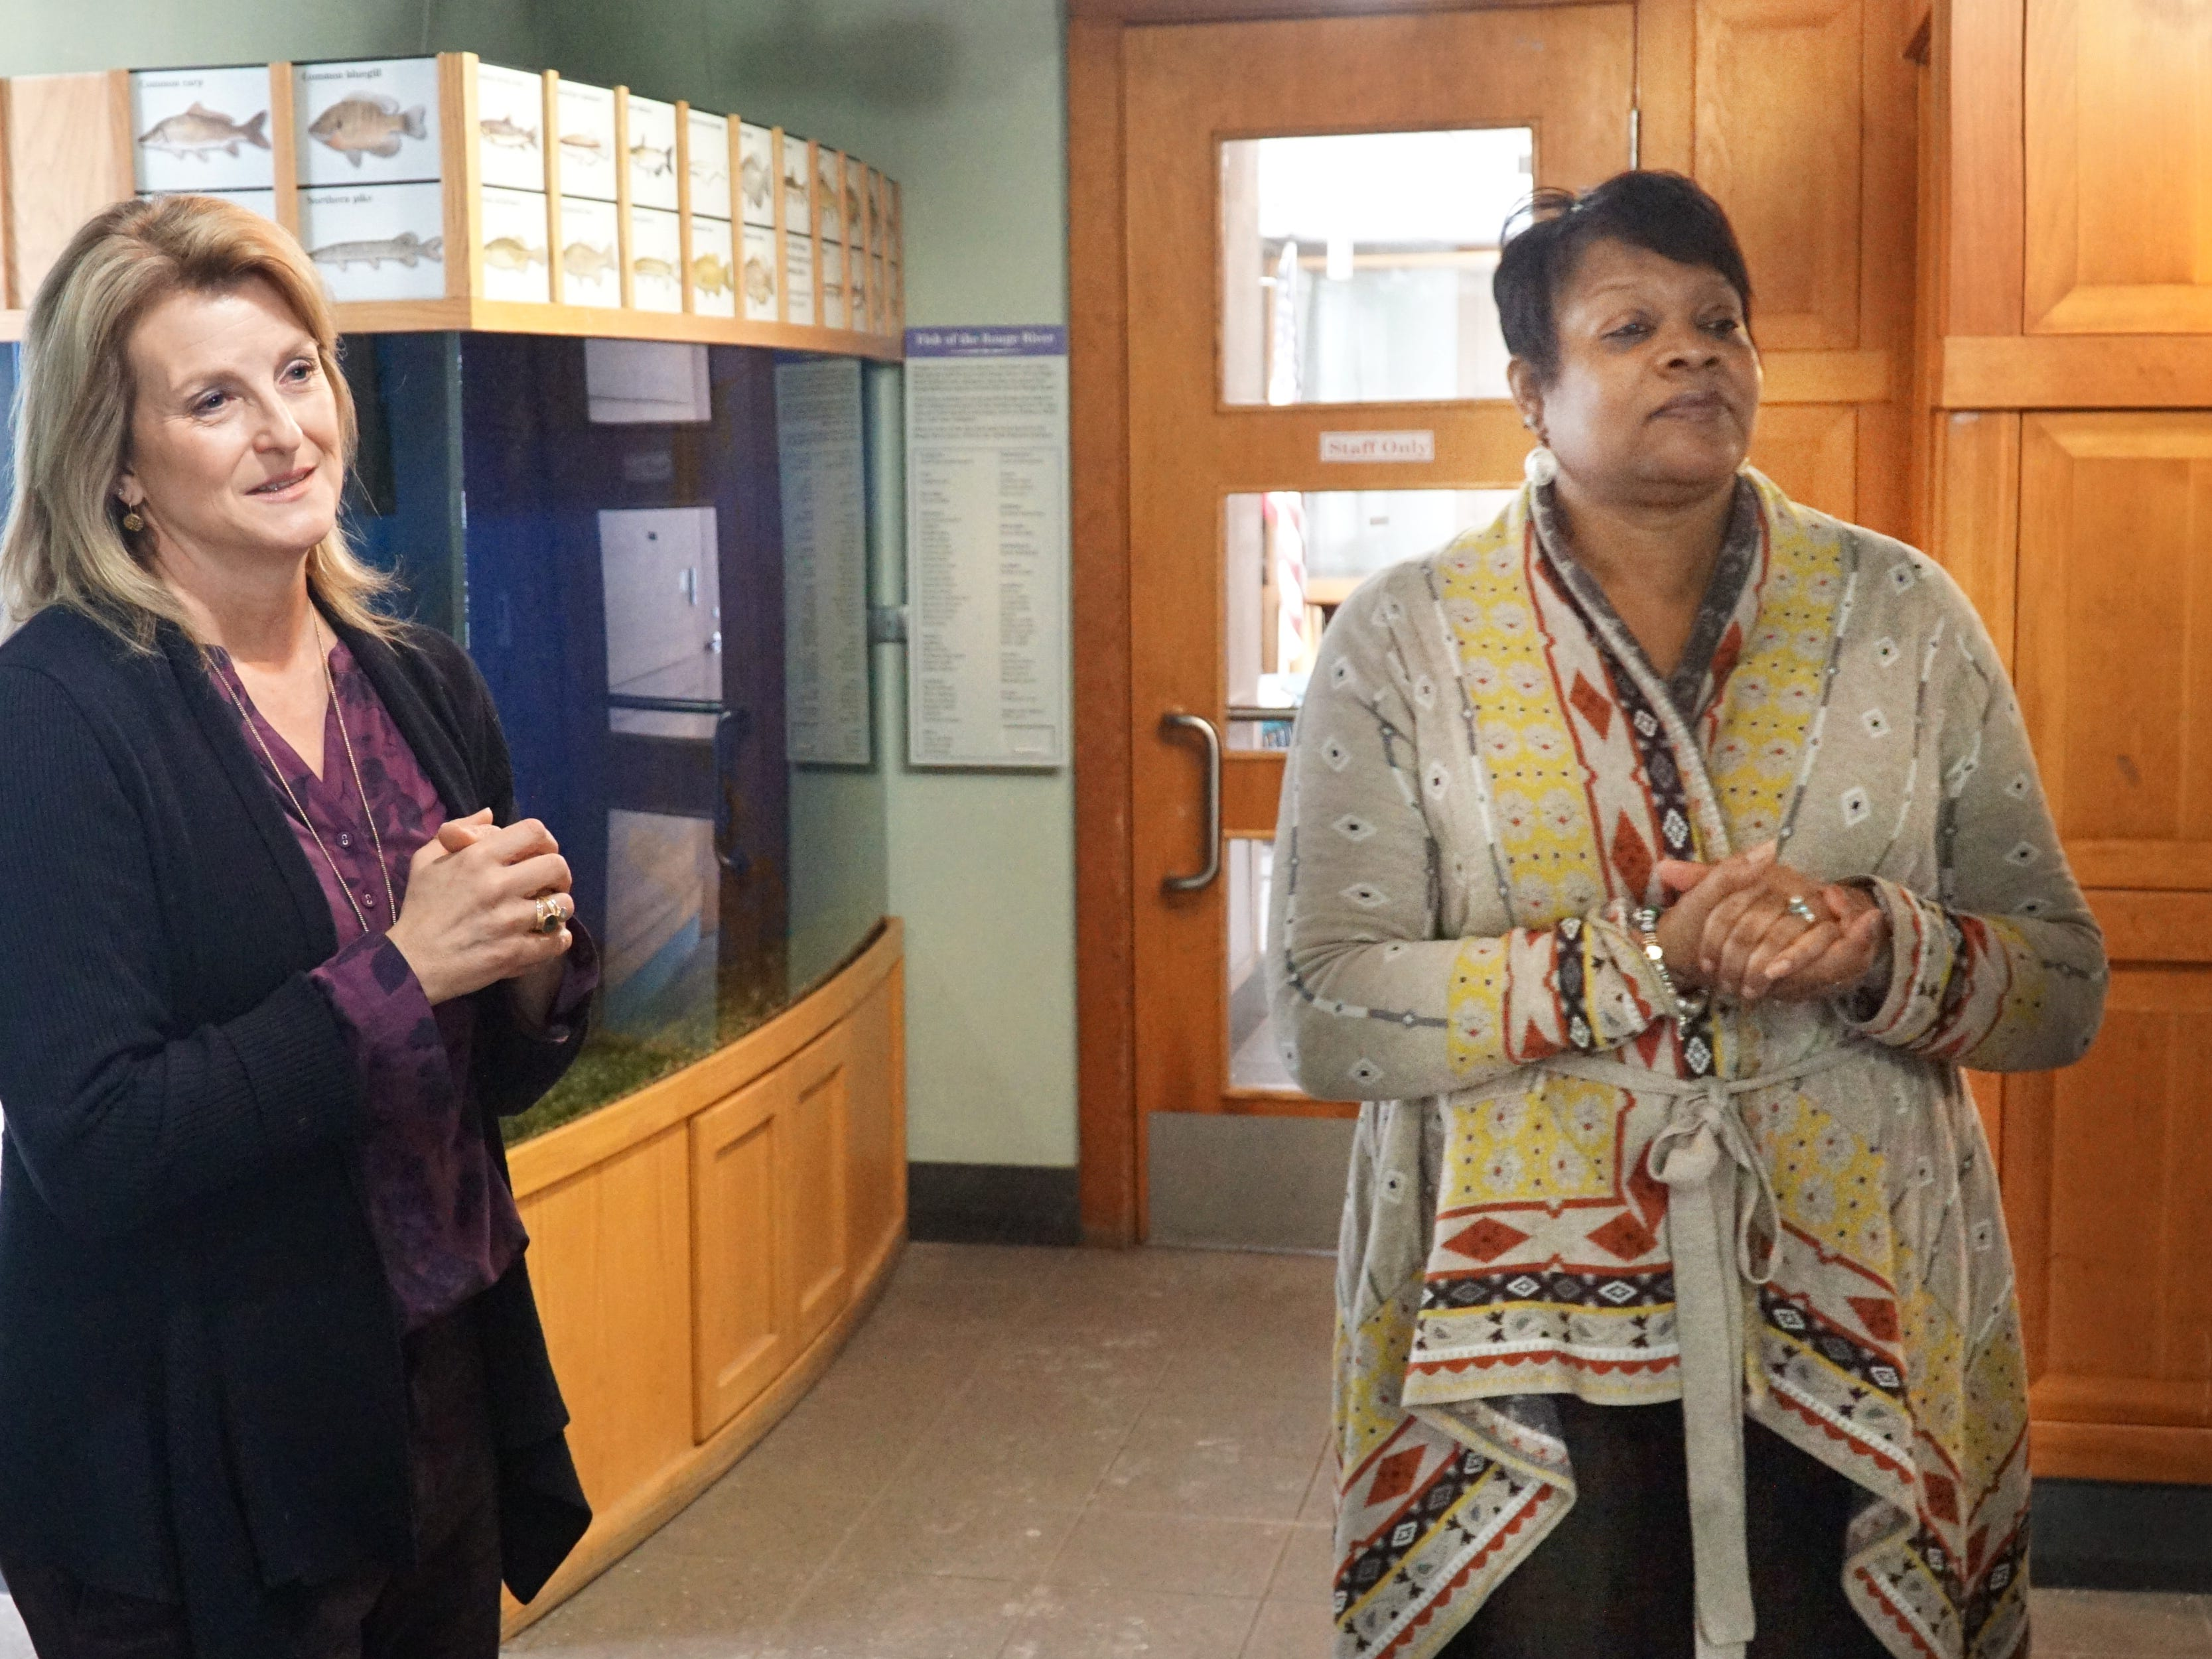 Elizabeth Iszler, left, and Alicia Bradford talk about some of the updates on their way for Wayne County's Nankin Mills Nature Center.